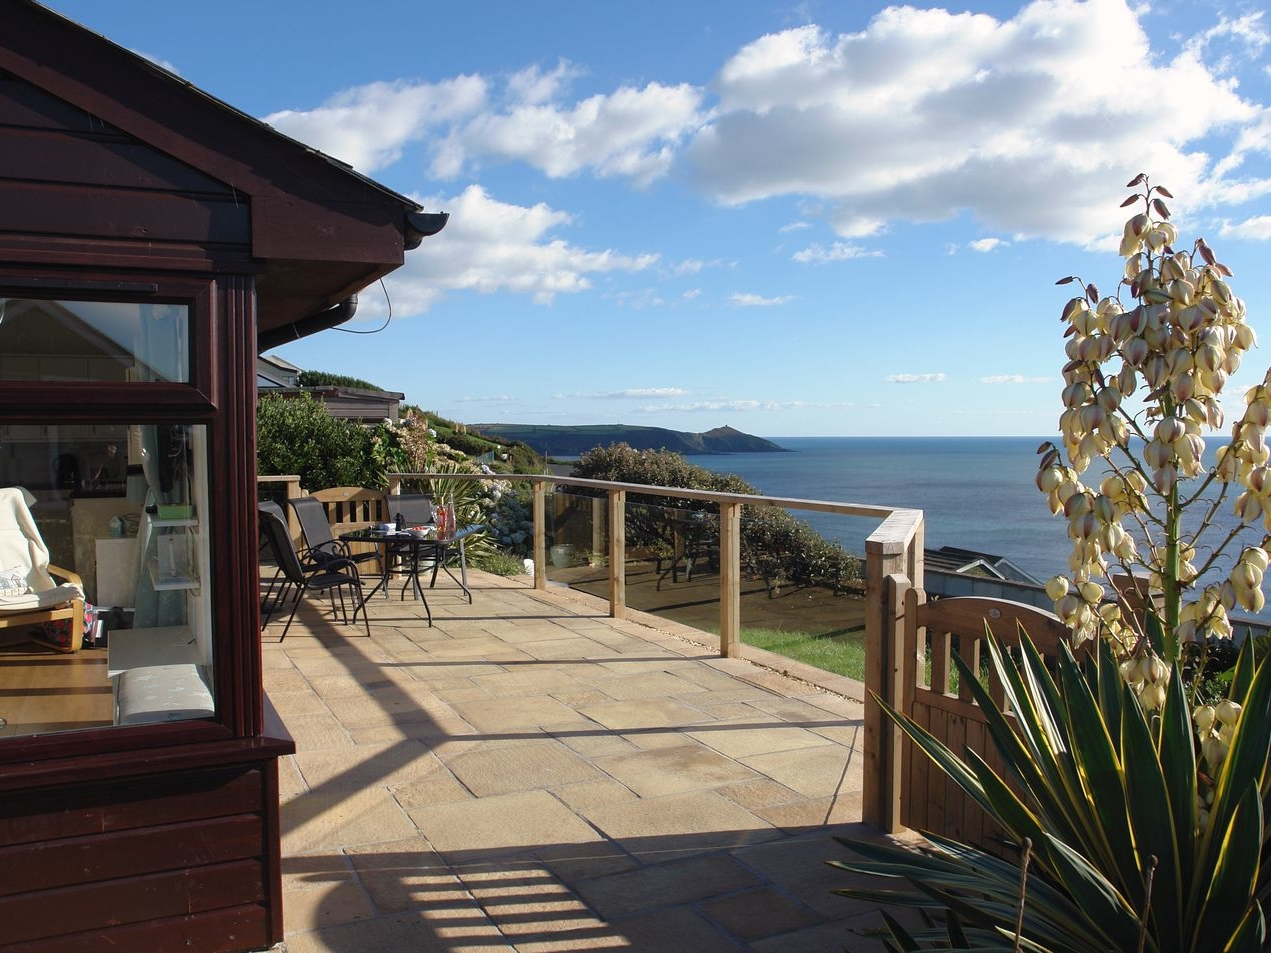 Marpen, Whitsand Bay, Cornwall